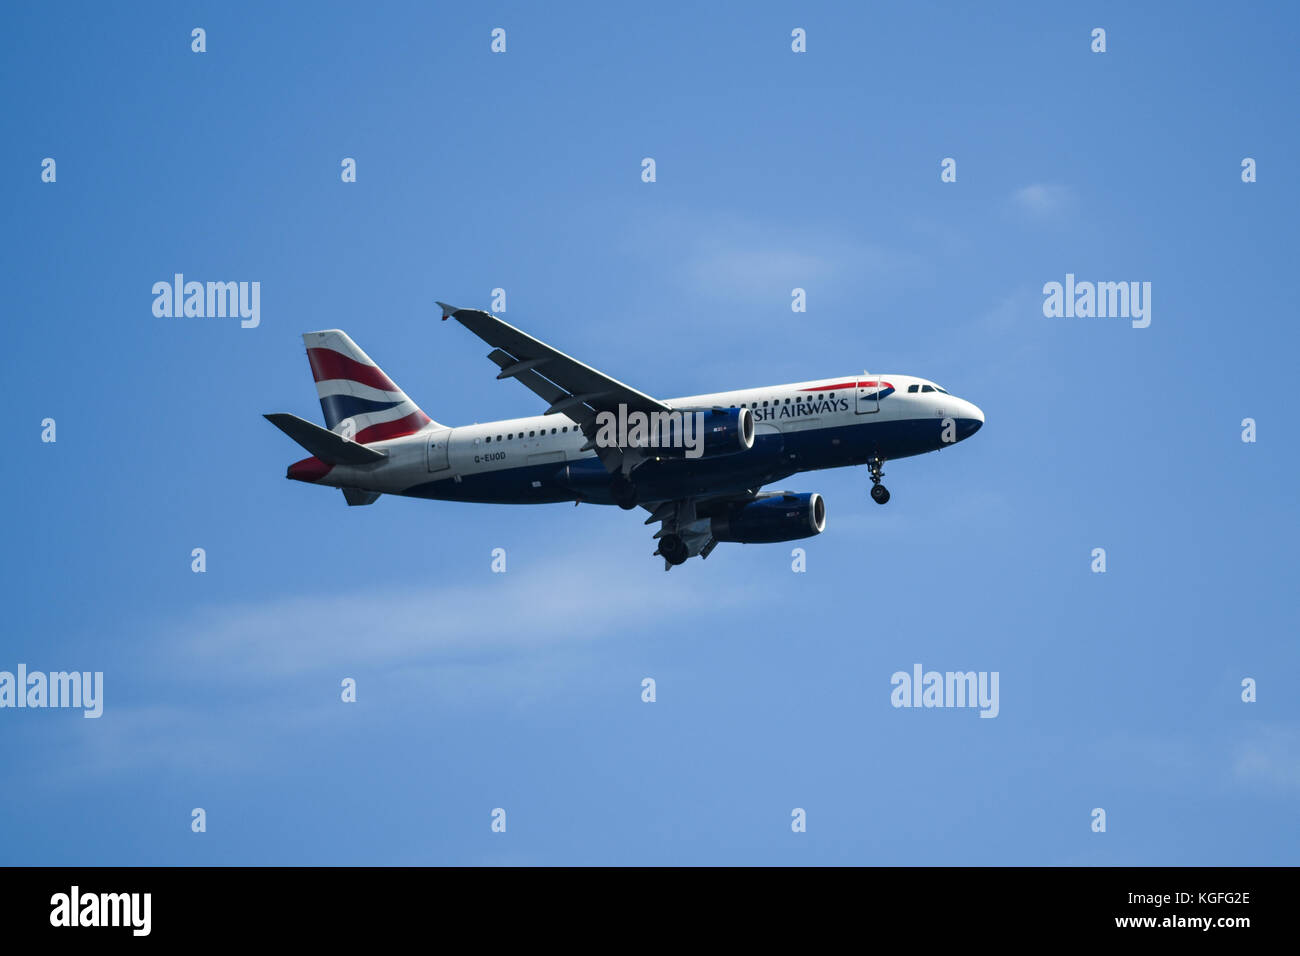 Bergen, Norway, 24 July 2017: British airways plane flying against the blue sky in Norway. - Stock Image